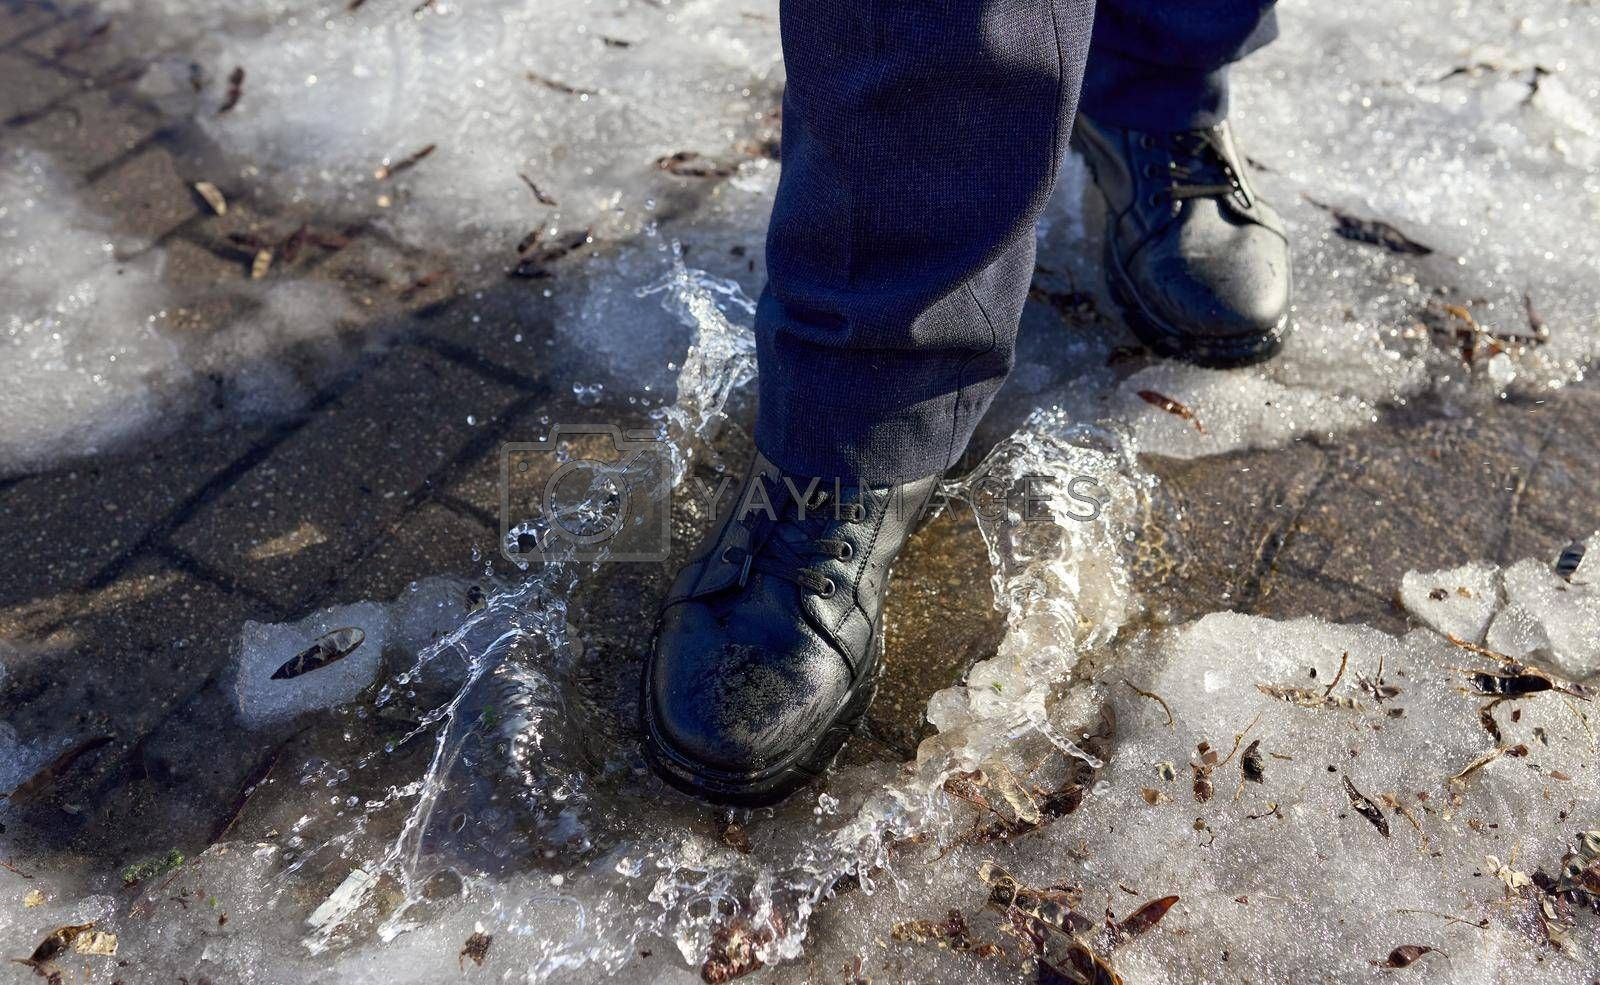 Male feet in shoes walk on a puddle of melted snow. Selective focus